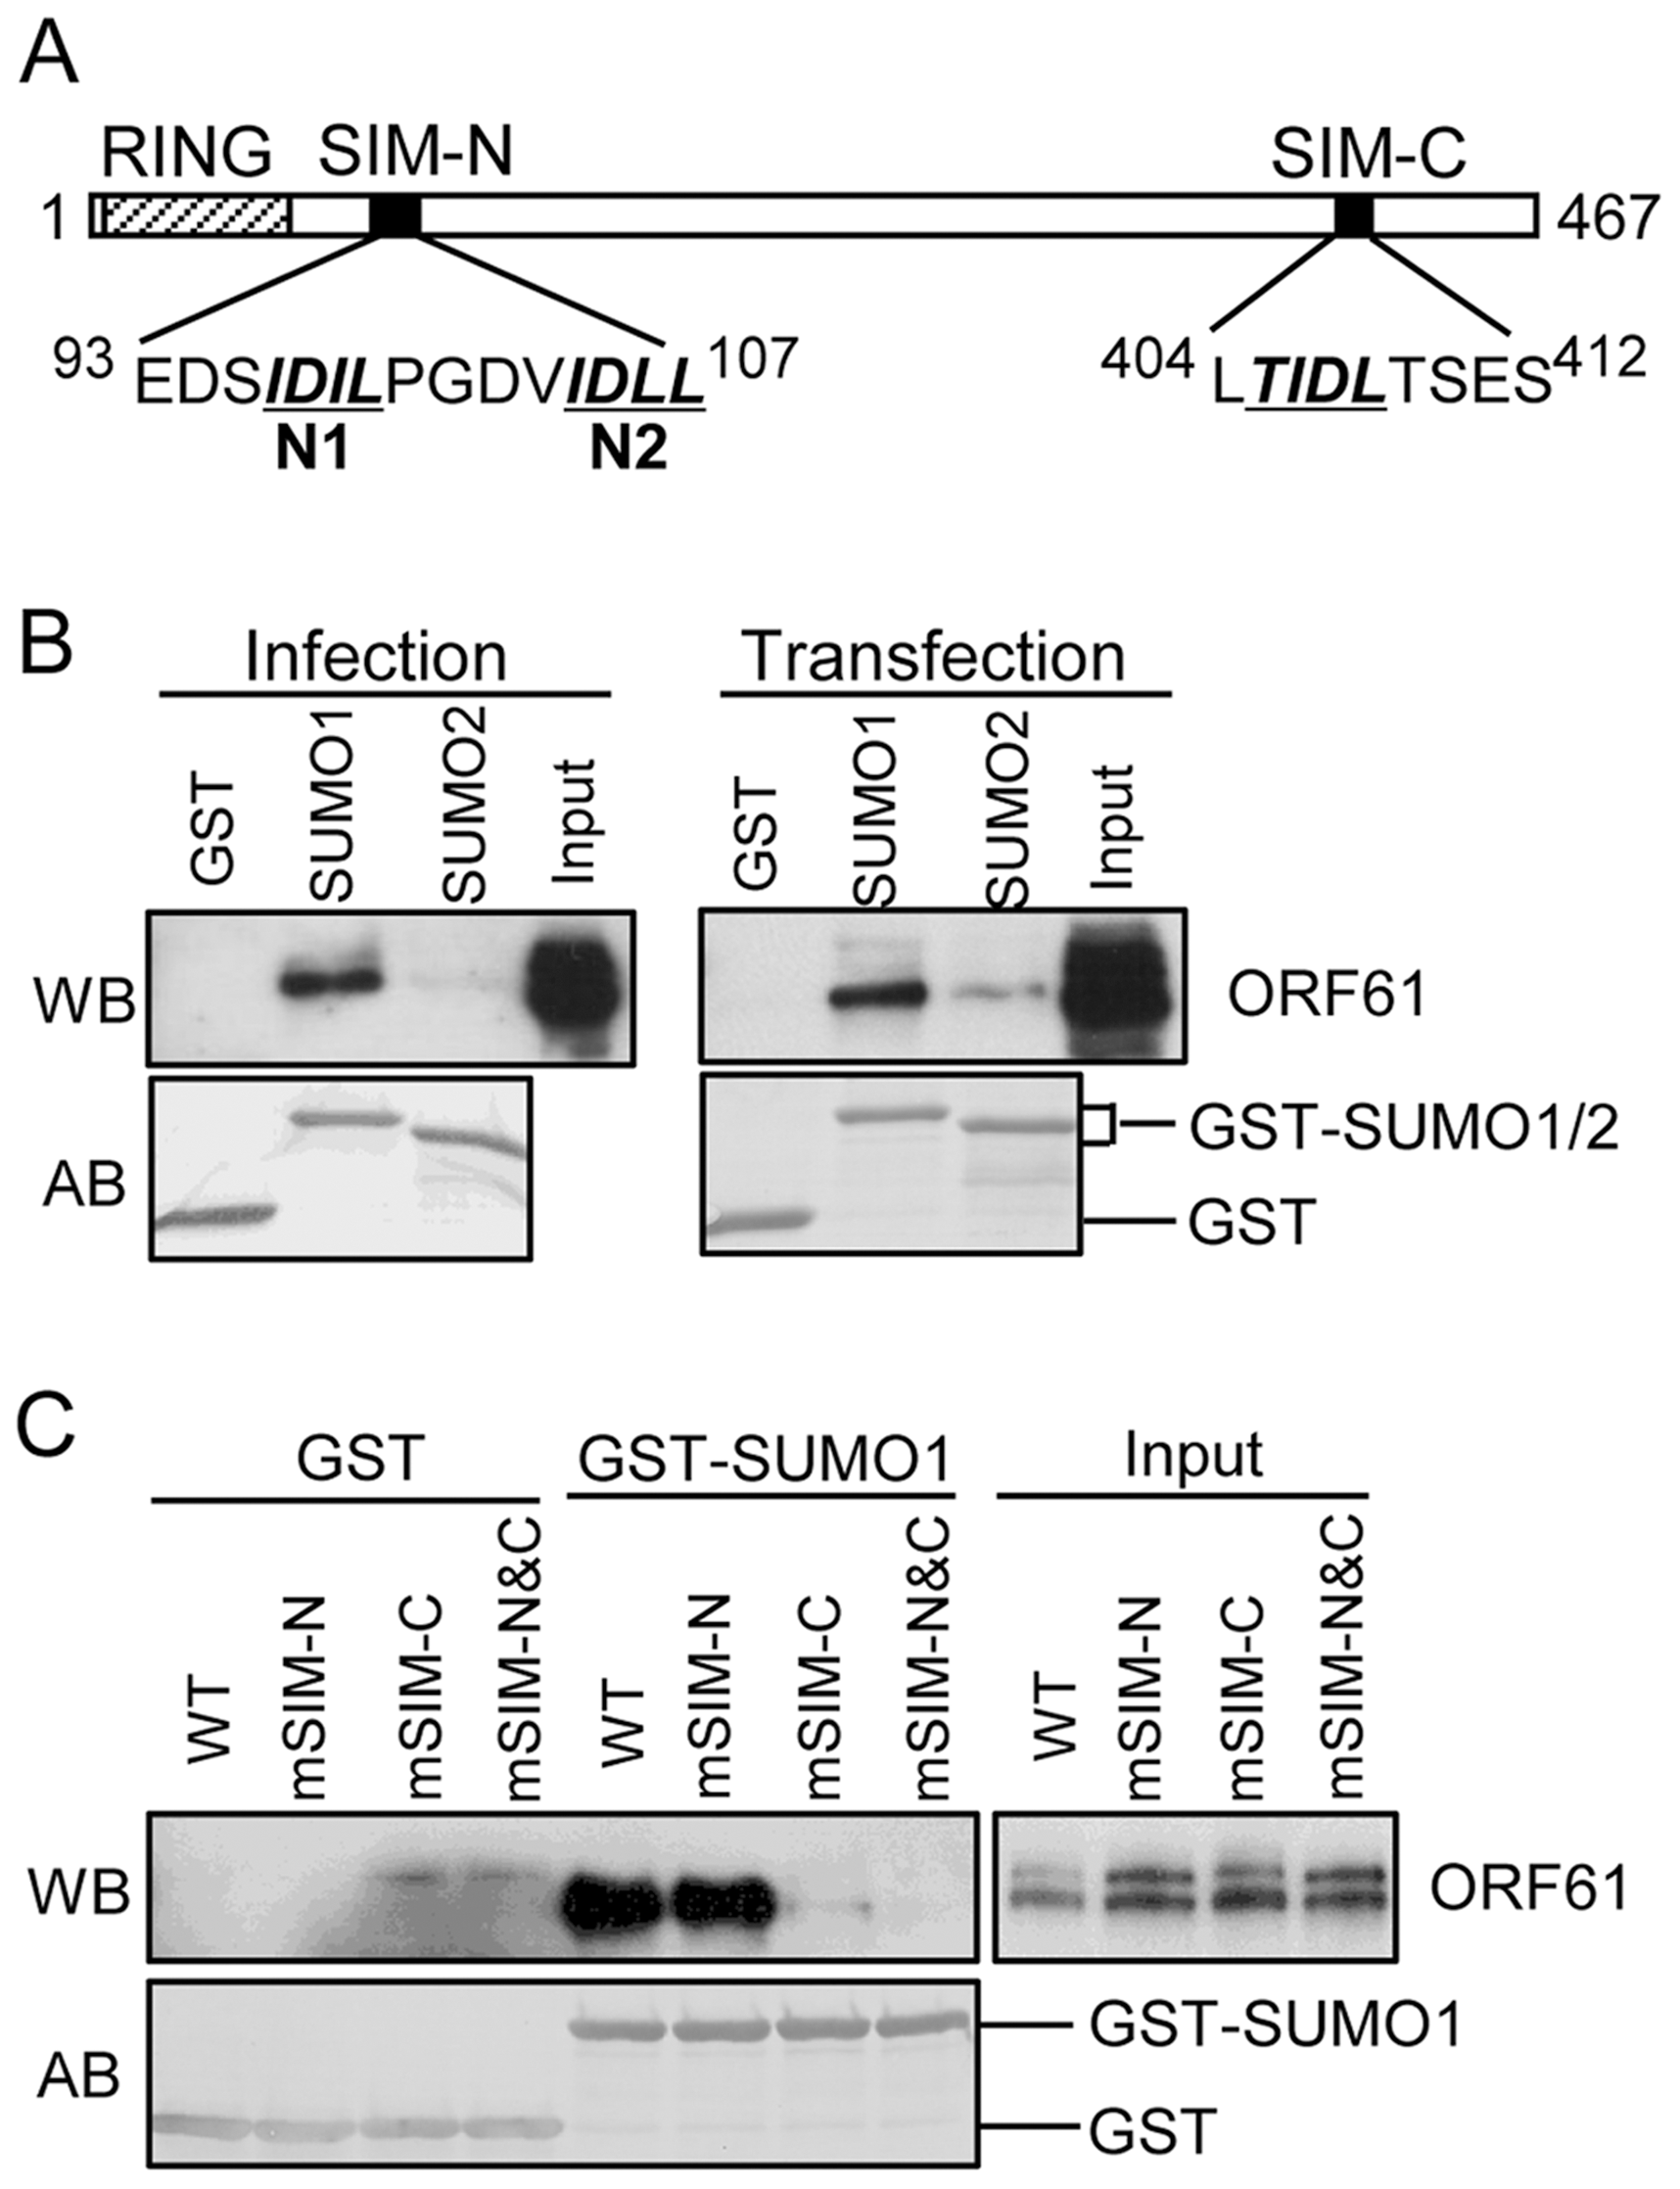 ORF61 binds to SUMO1/2 through conserved SUMO-interacting motifs (SIMs).